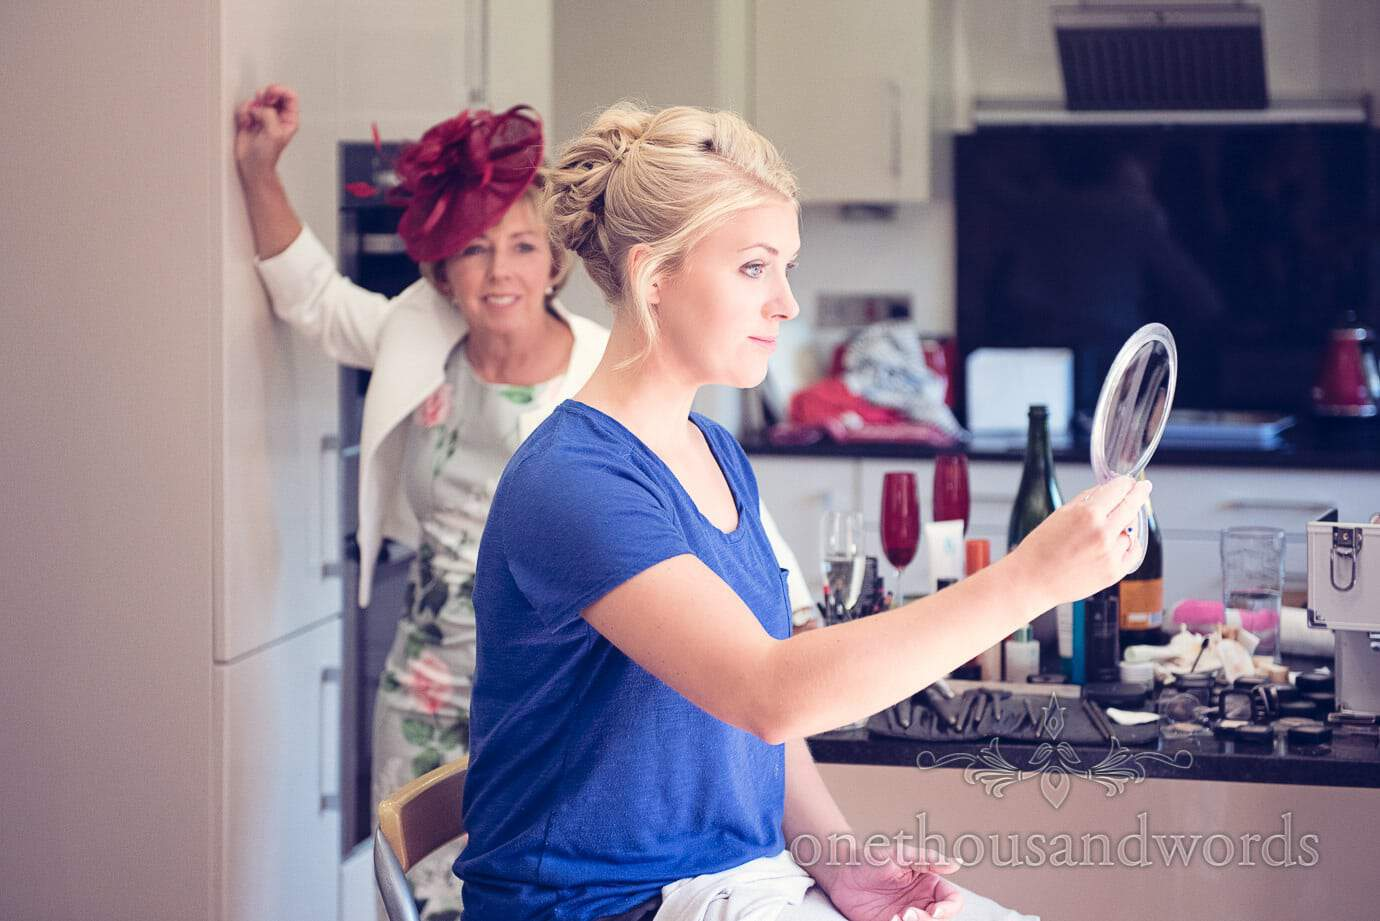 Bride checks her wedding makeup on wedding morning as her mother watches